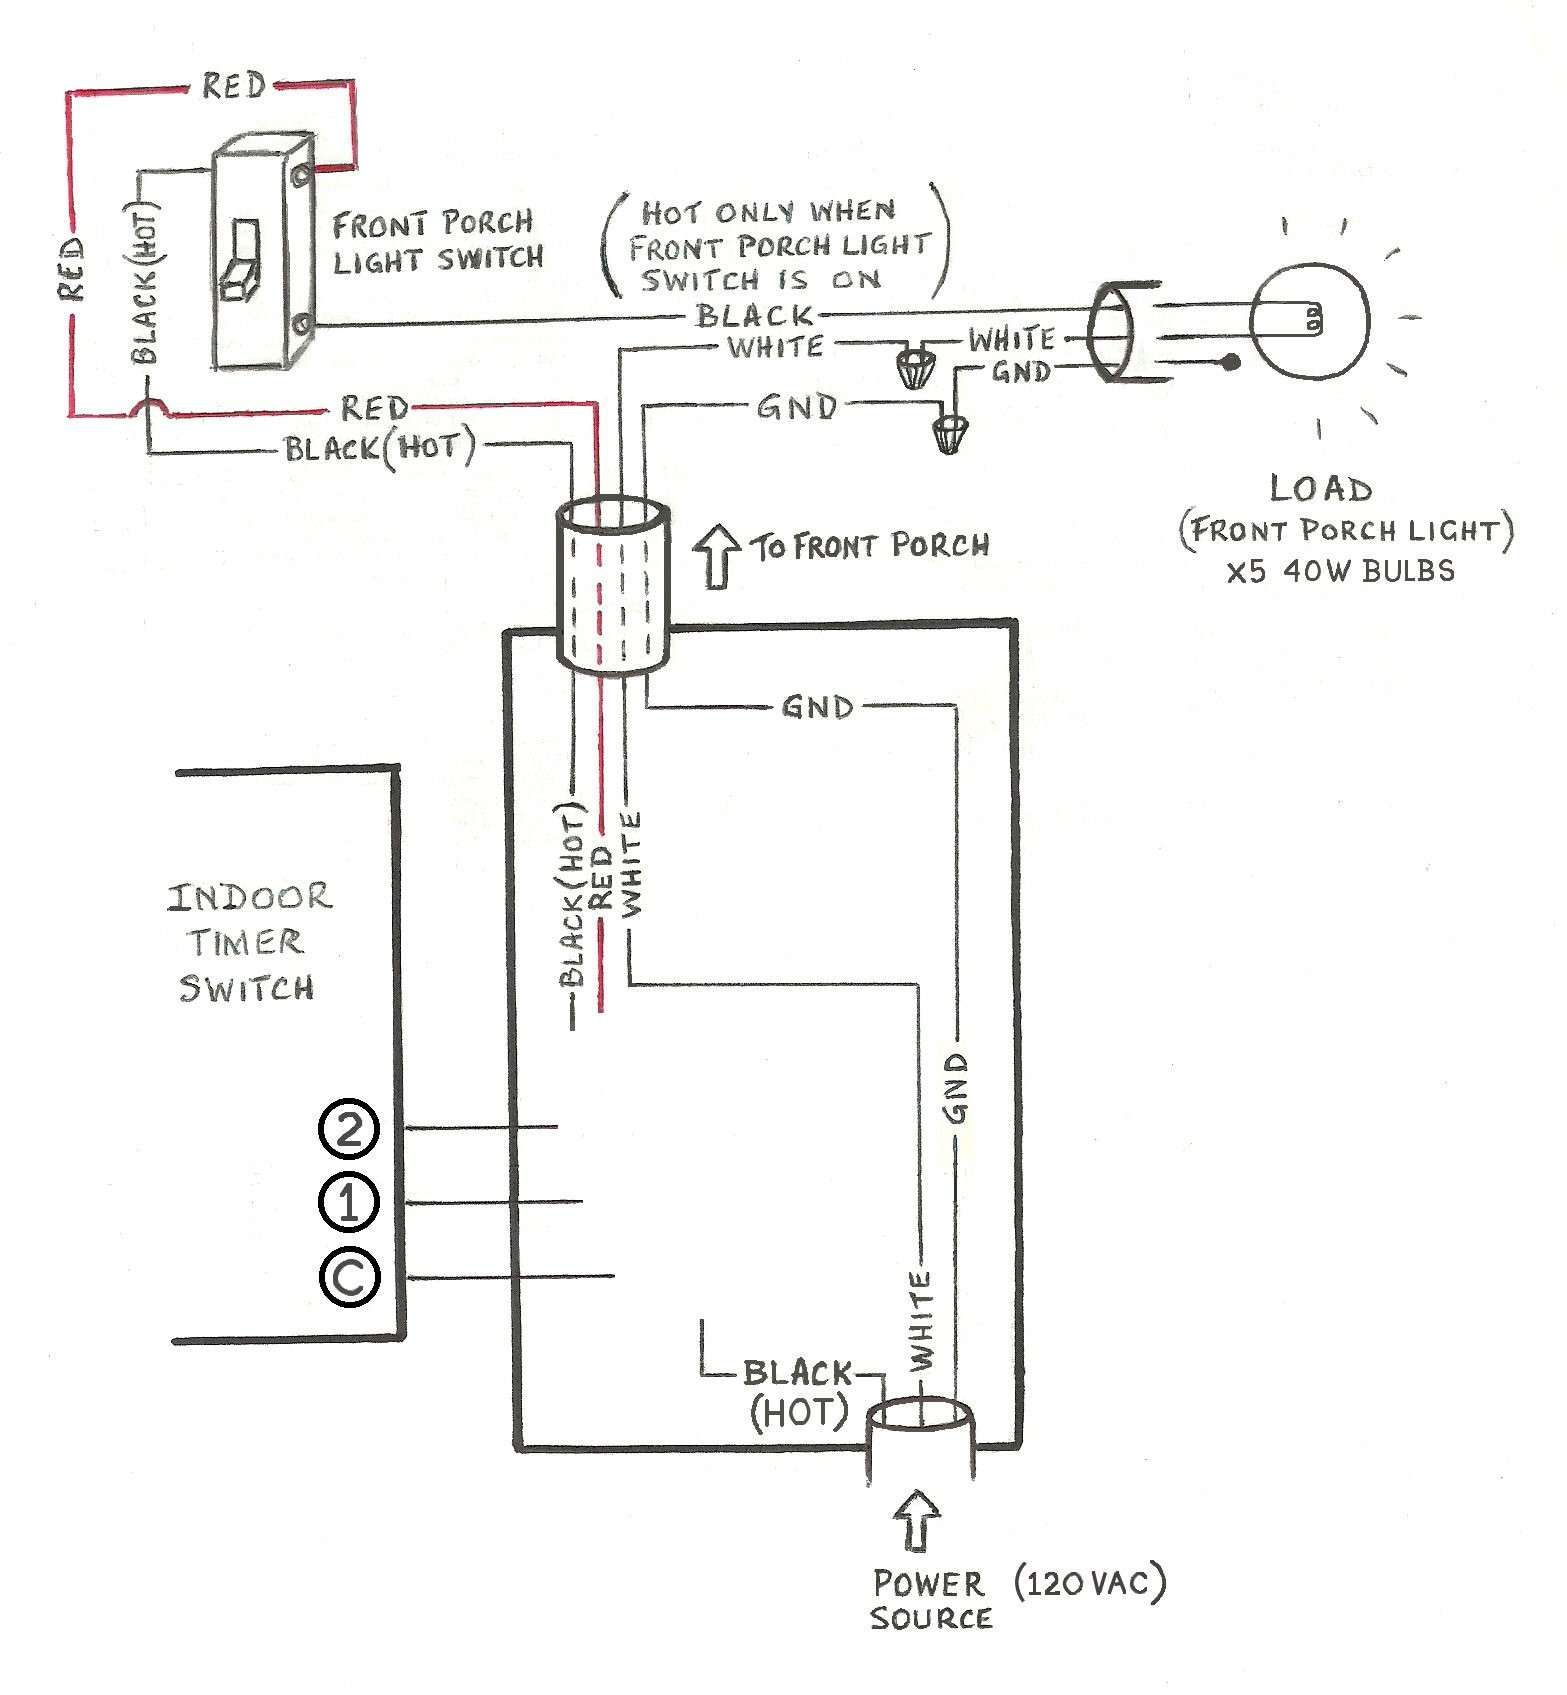 wiring diagram 3 way switch beautiful electrical timer switch wiring diagram [ 1567 x 1695 Pixel ]